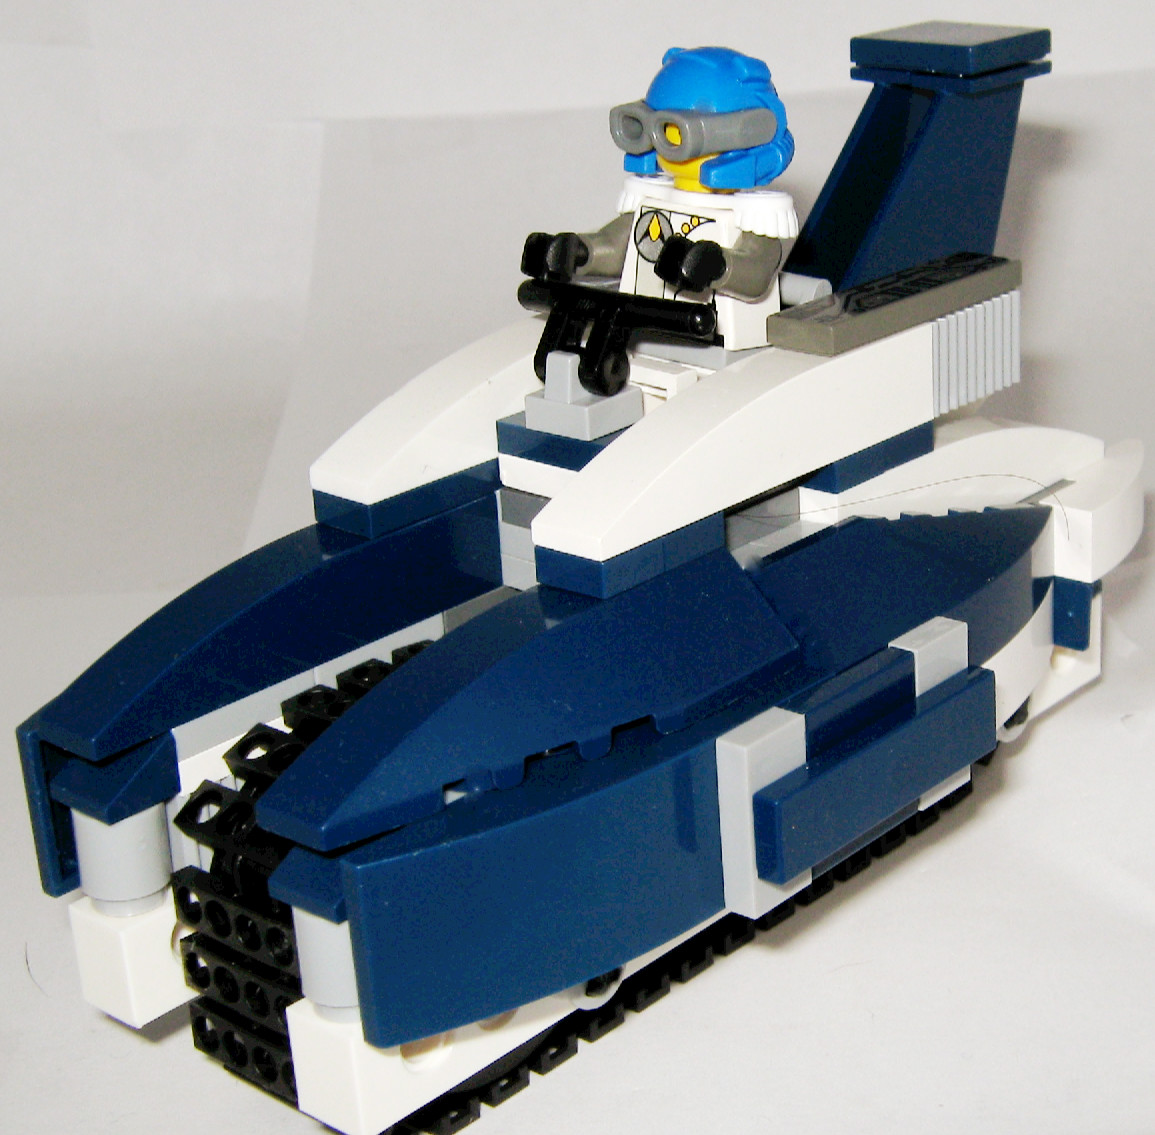 racer__the_royal_blue_009.jpg